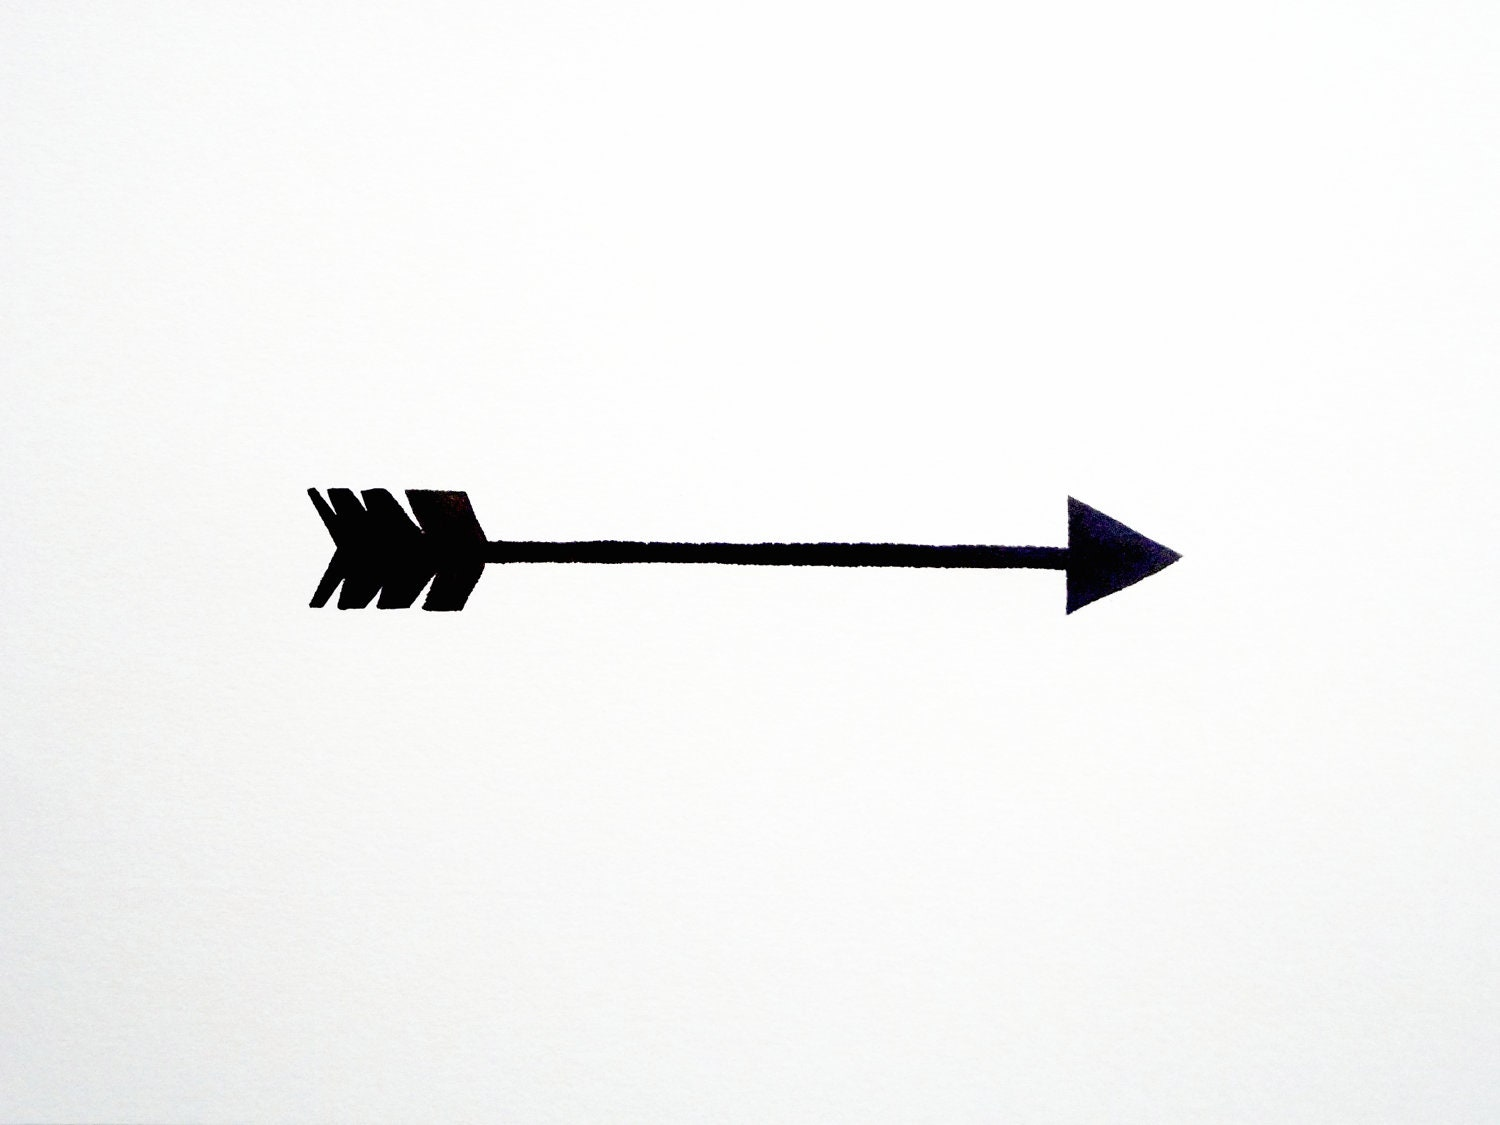 Watercolor Original - Arrow - Geometric - Modern - Black - White - Gray - Contemporary - Simple - GeometricInk